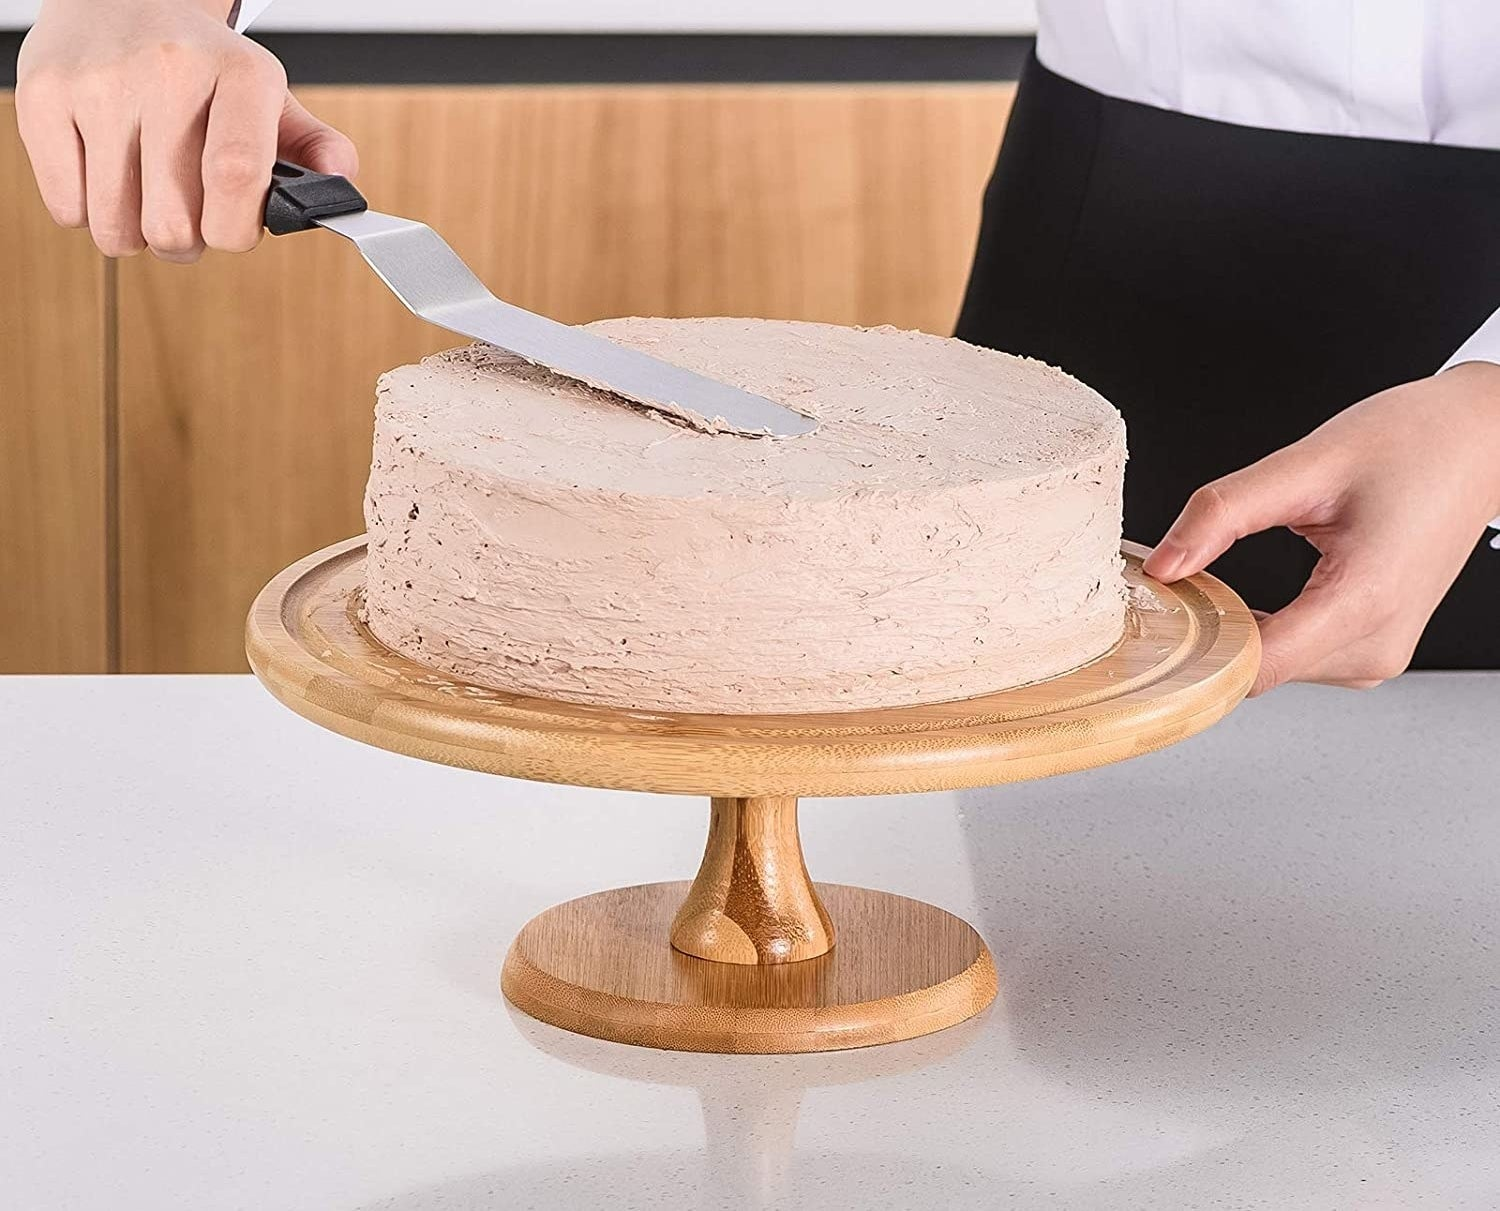 A person icing a cake with a metal spatula